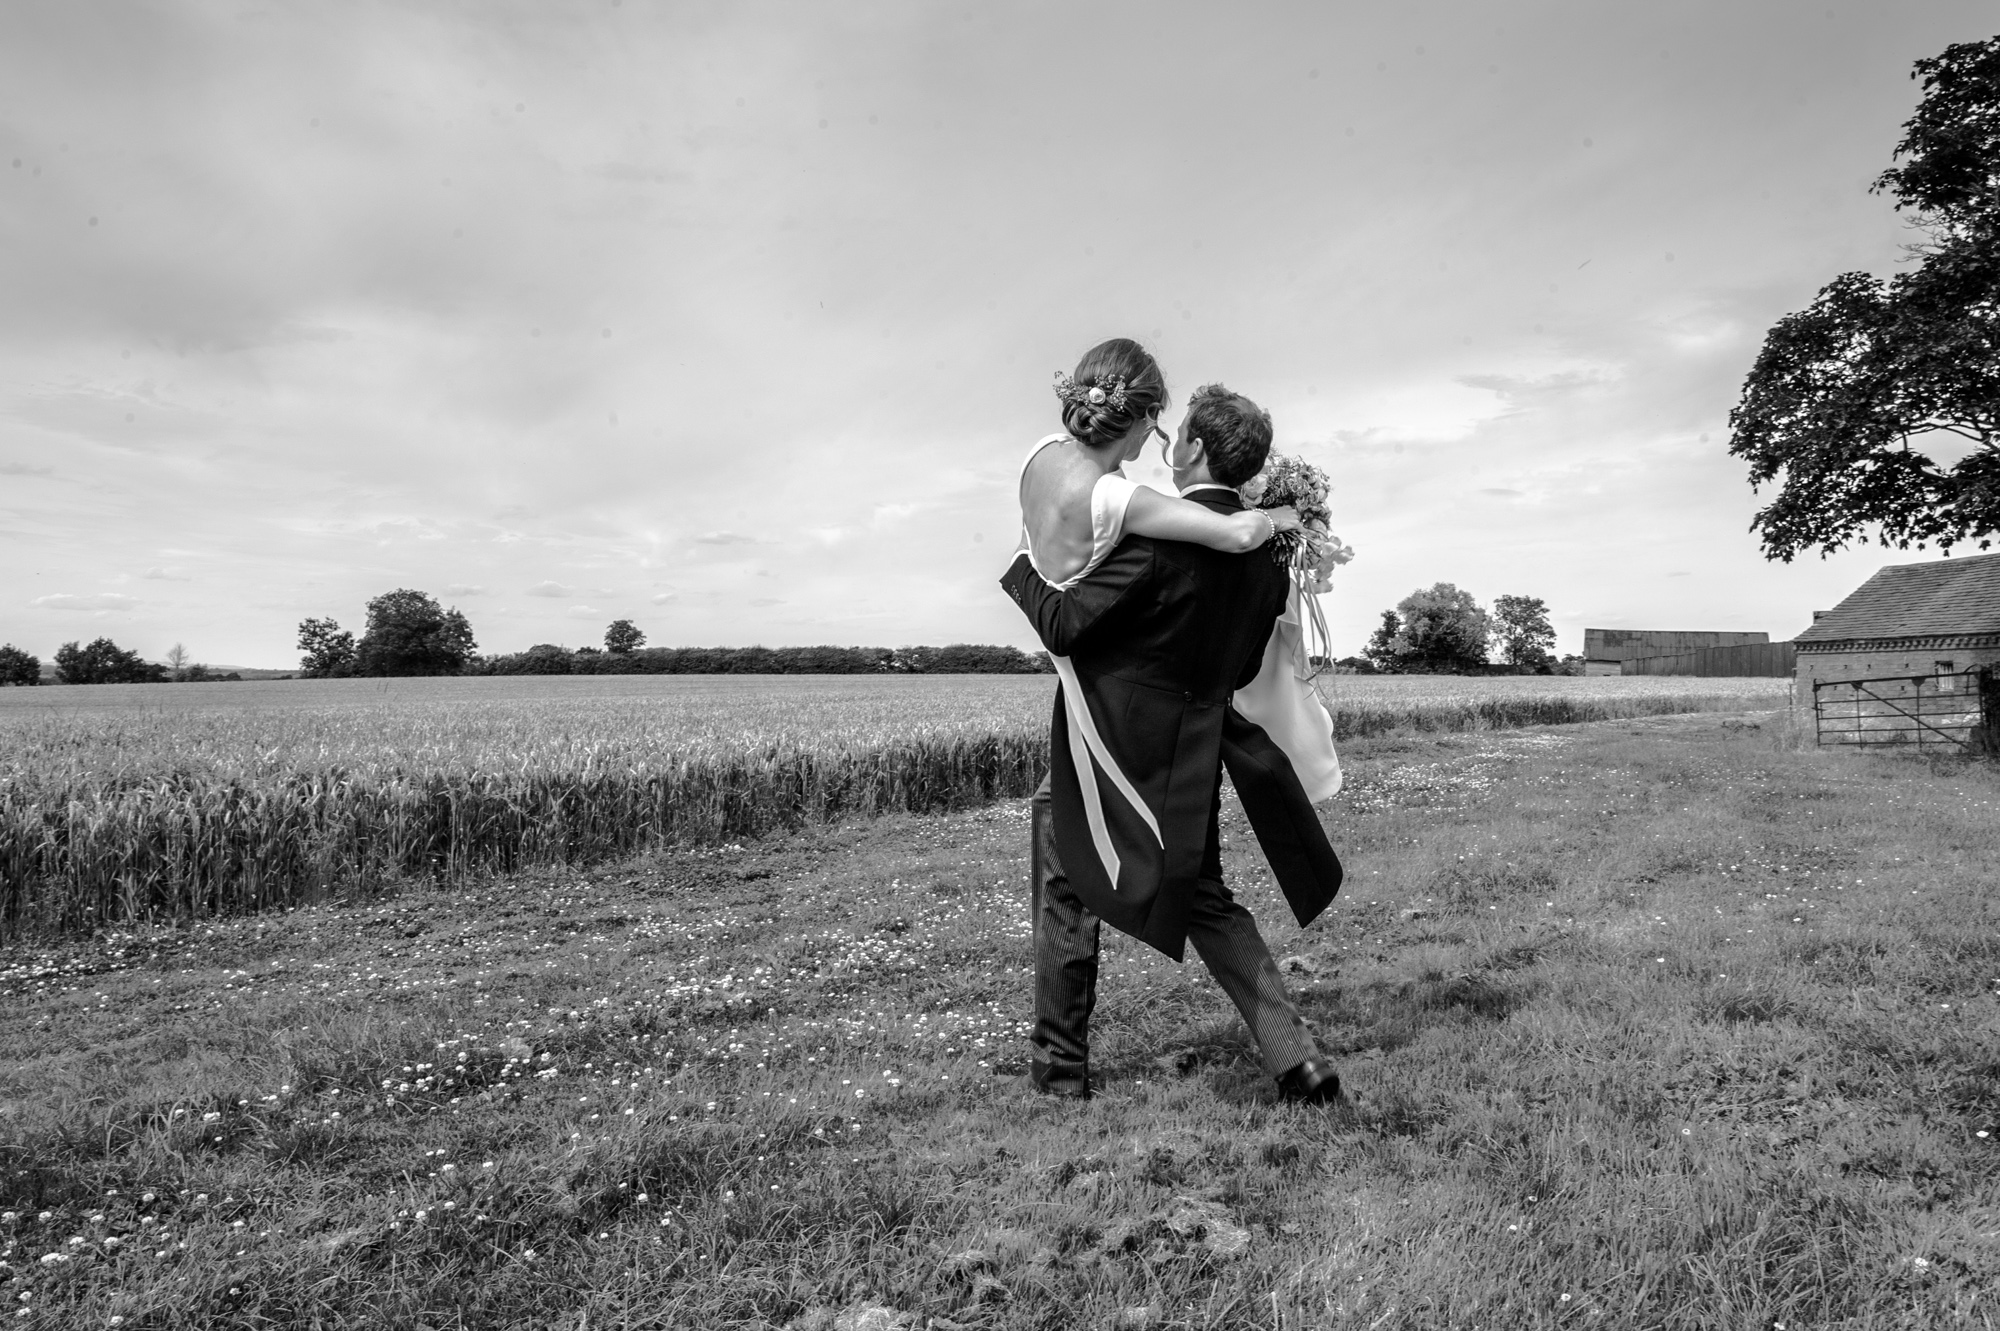 Cotswold Wedding Photography 11.09.1829.jpg